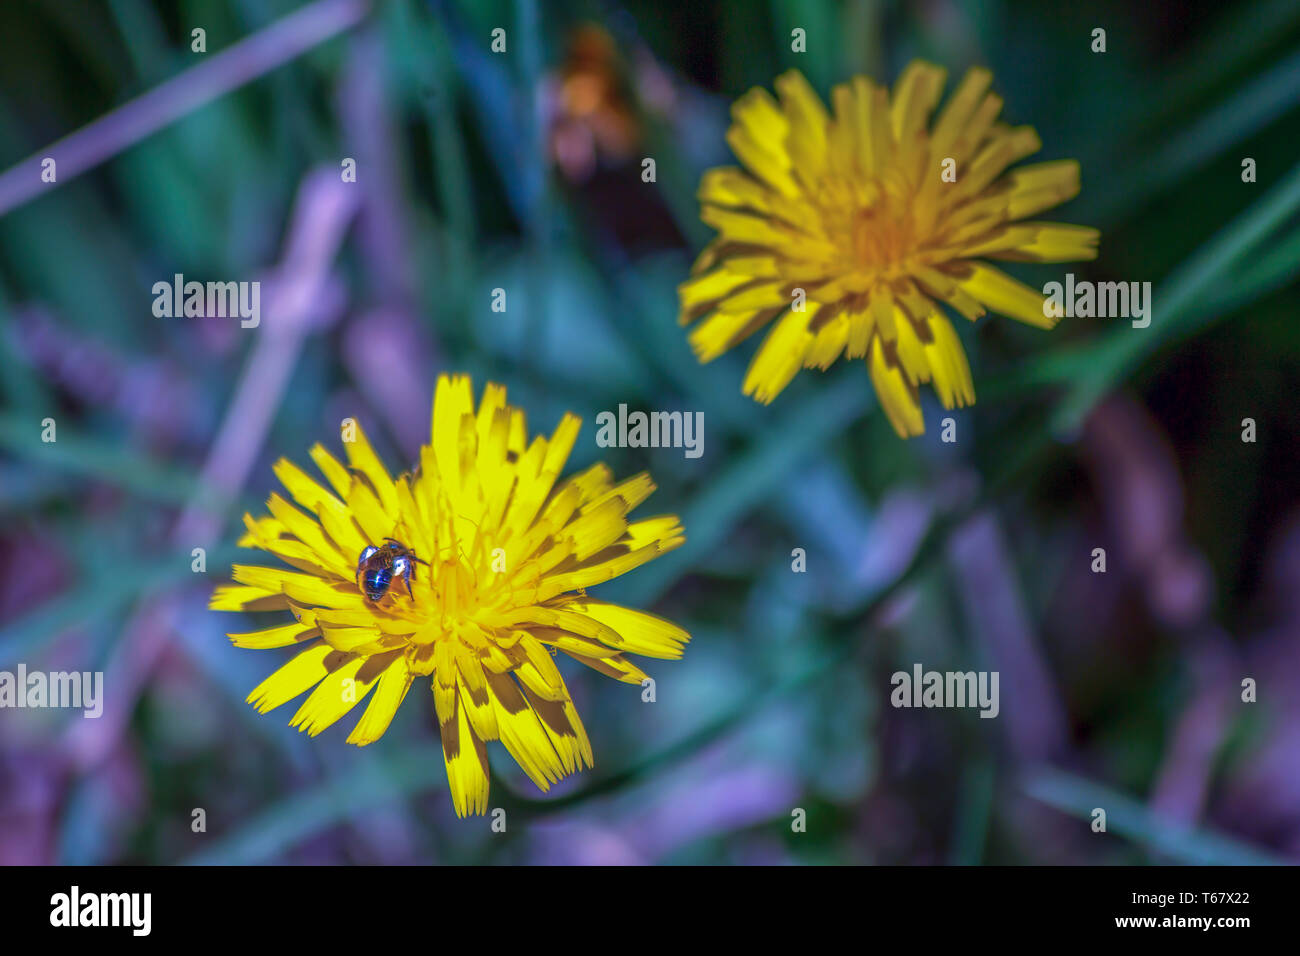 Close-up photography of a Cuckoo wasp feeding on a dandelion flower at the central mountains of the Colombian Andes. - Stock Image